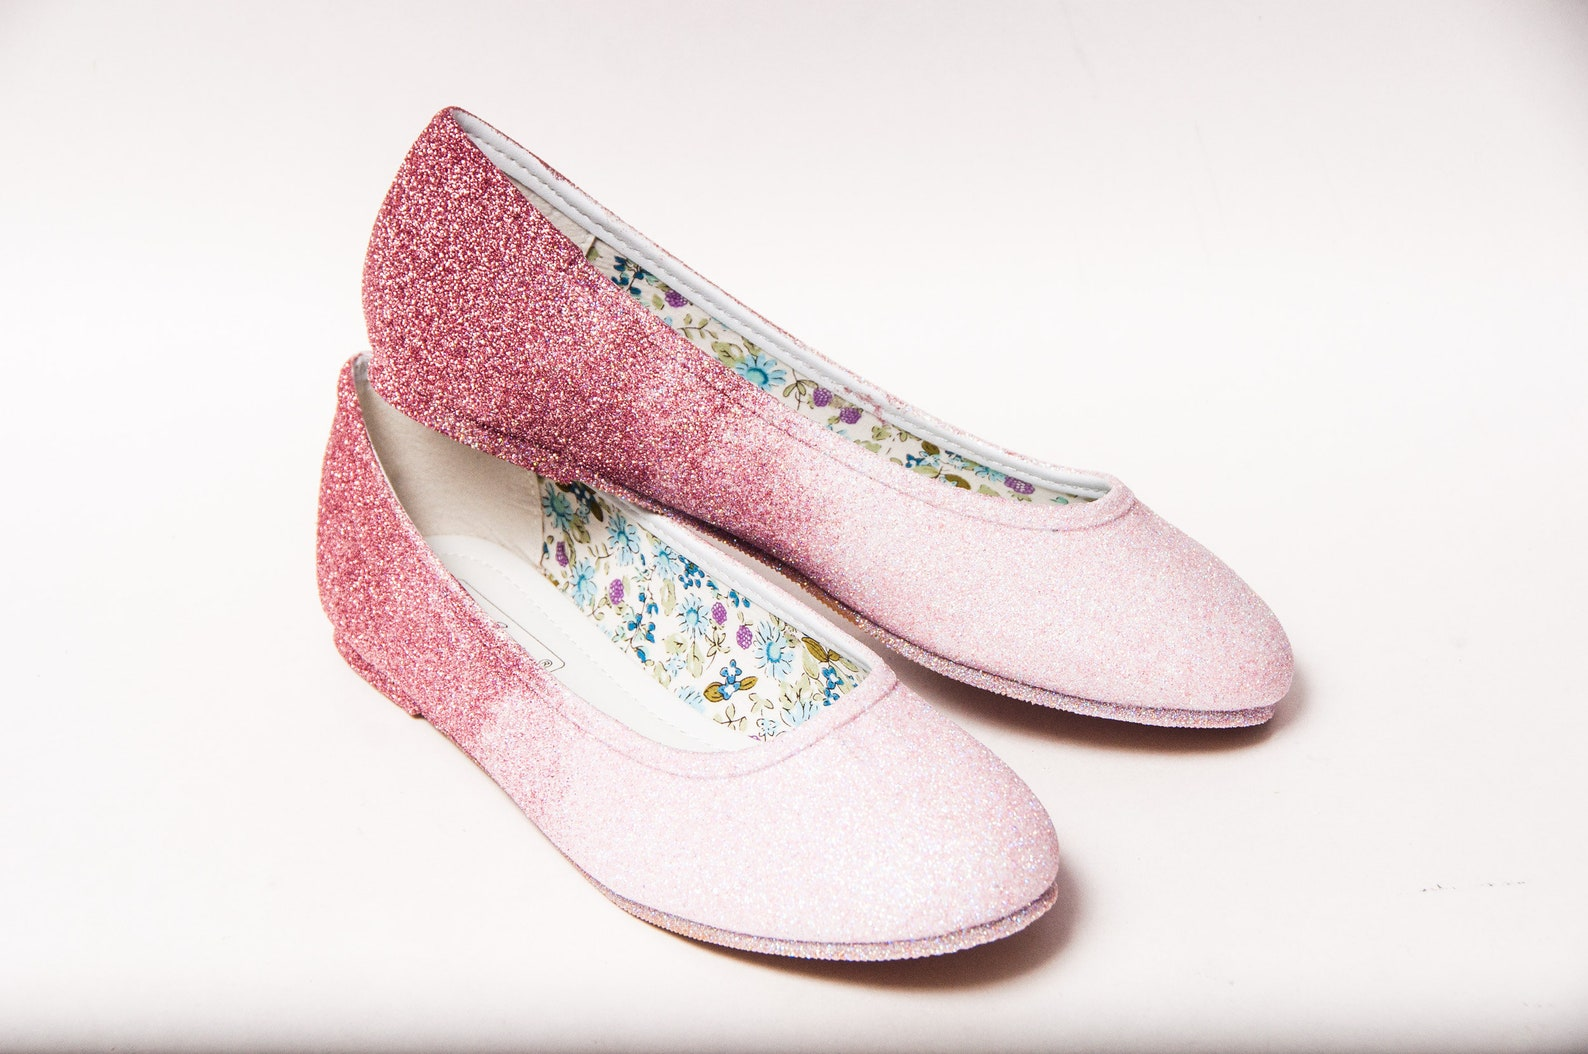 ready to ship - glitter ombre - size 7 carnation pink to light pink white ballet flats slippers shoes